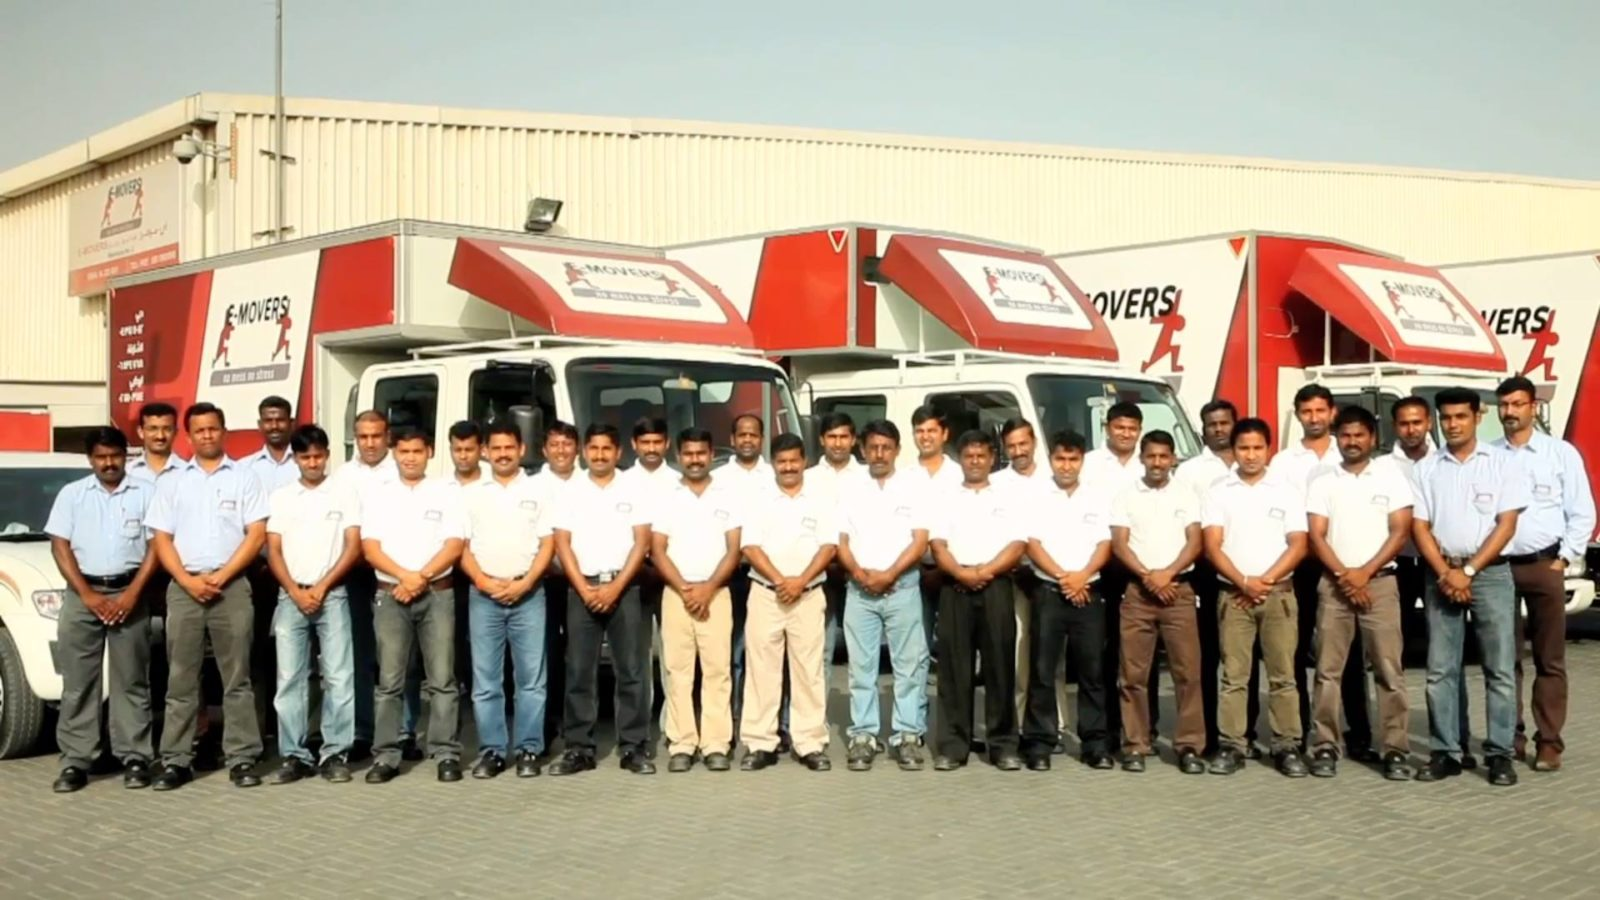 E-Movers Dubai